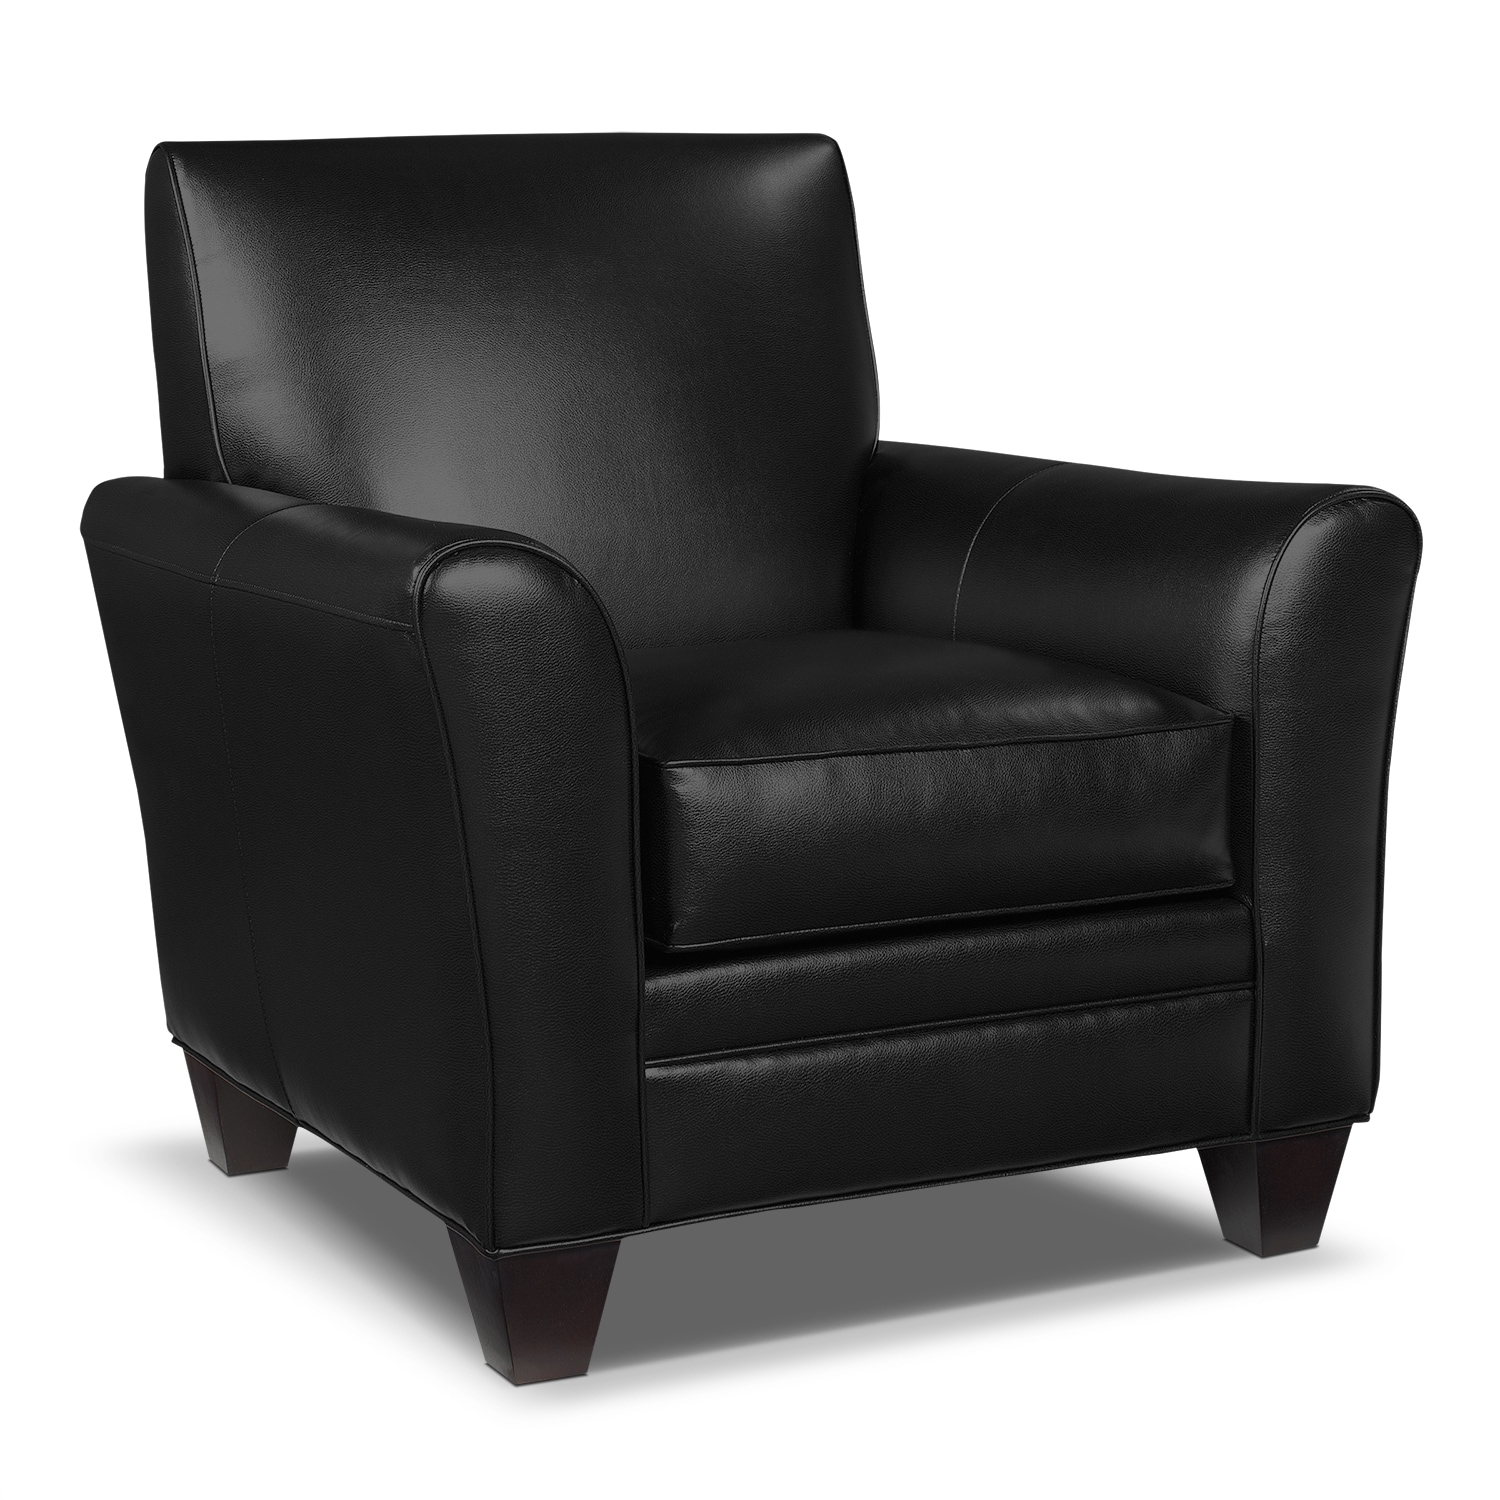 Icon Accent Chair - Black  sc 1 st  Value City Furniture & Living Room Chairs u0026 Chaises | Value City Furniture | Value City ...